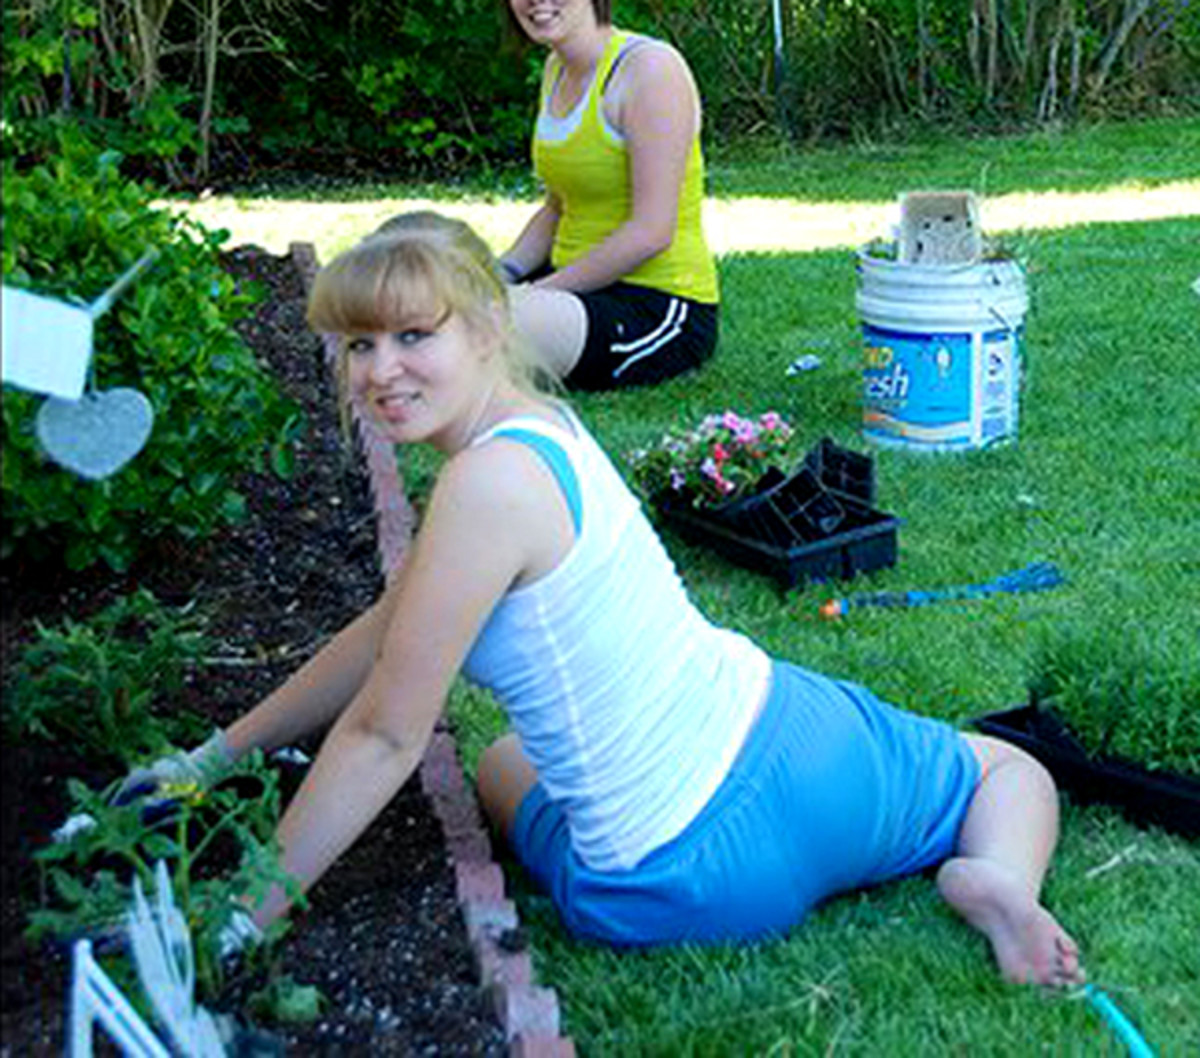 Use willing friends and family as cheap landscape labor. Reward them with a barbeque and beer!